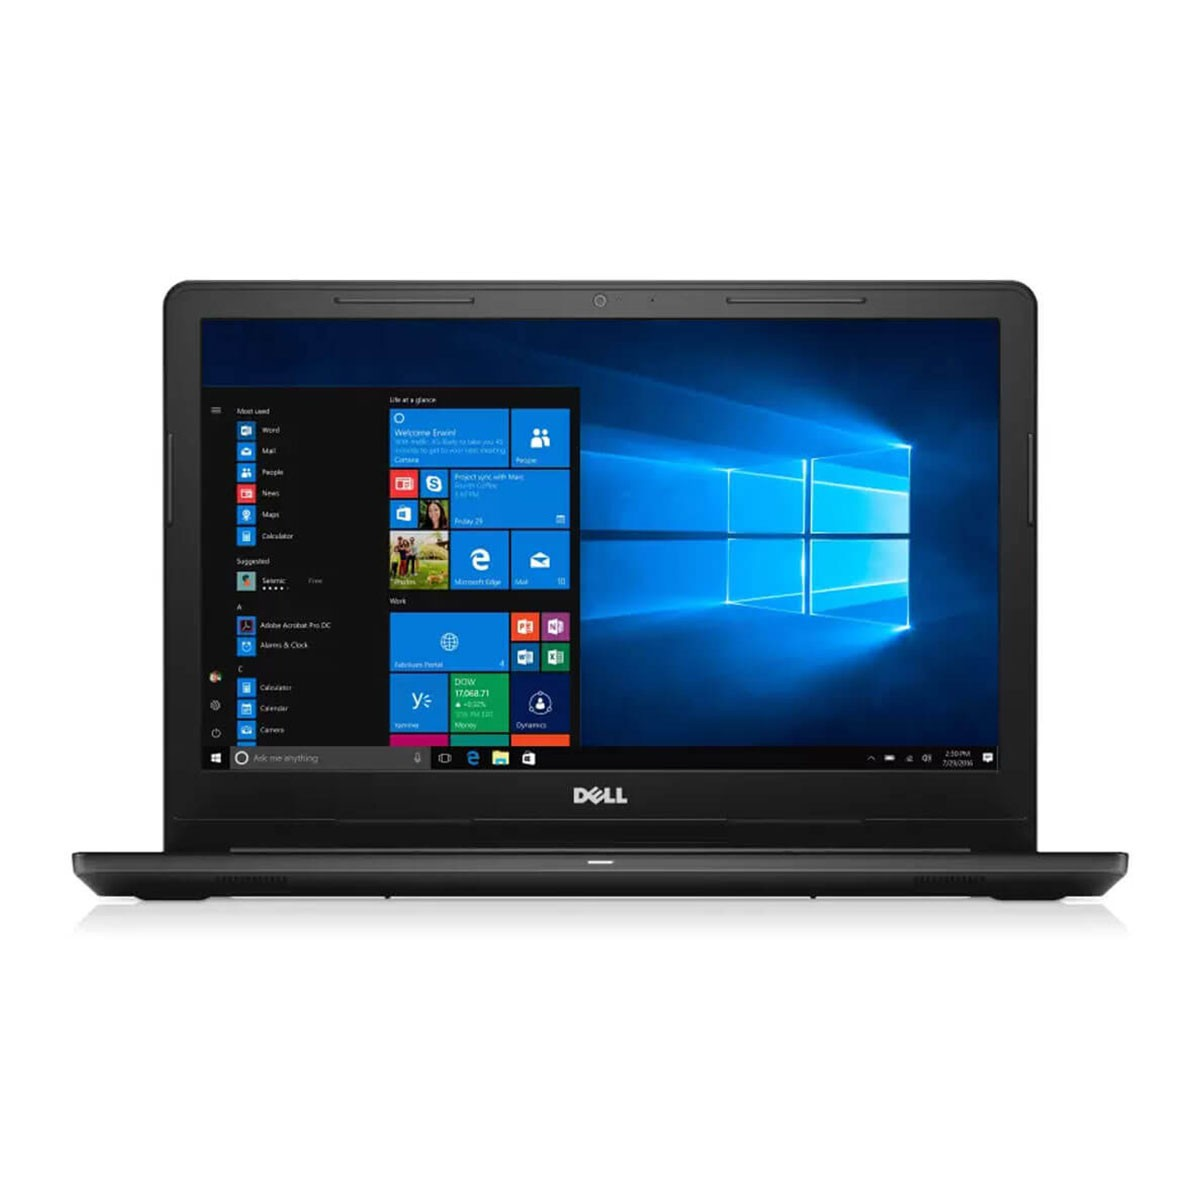 DELL VOSTRO 3268 DT (INTEL PENTIUM G4560 3.50GHZ/4GB/1TB/DVD/WIN 10/DISPLAY NOT INCLUDED)